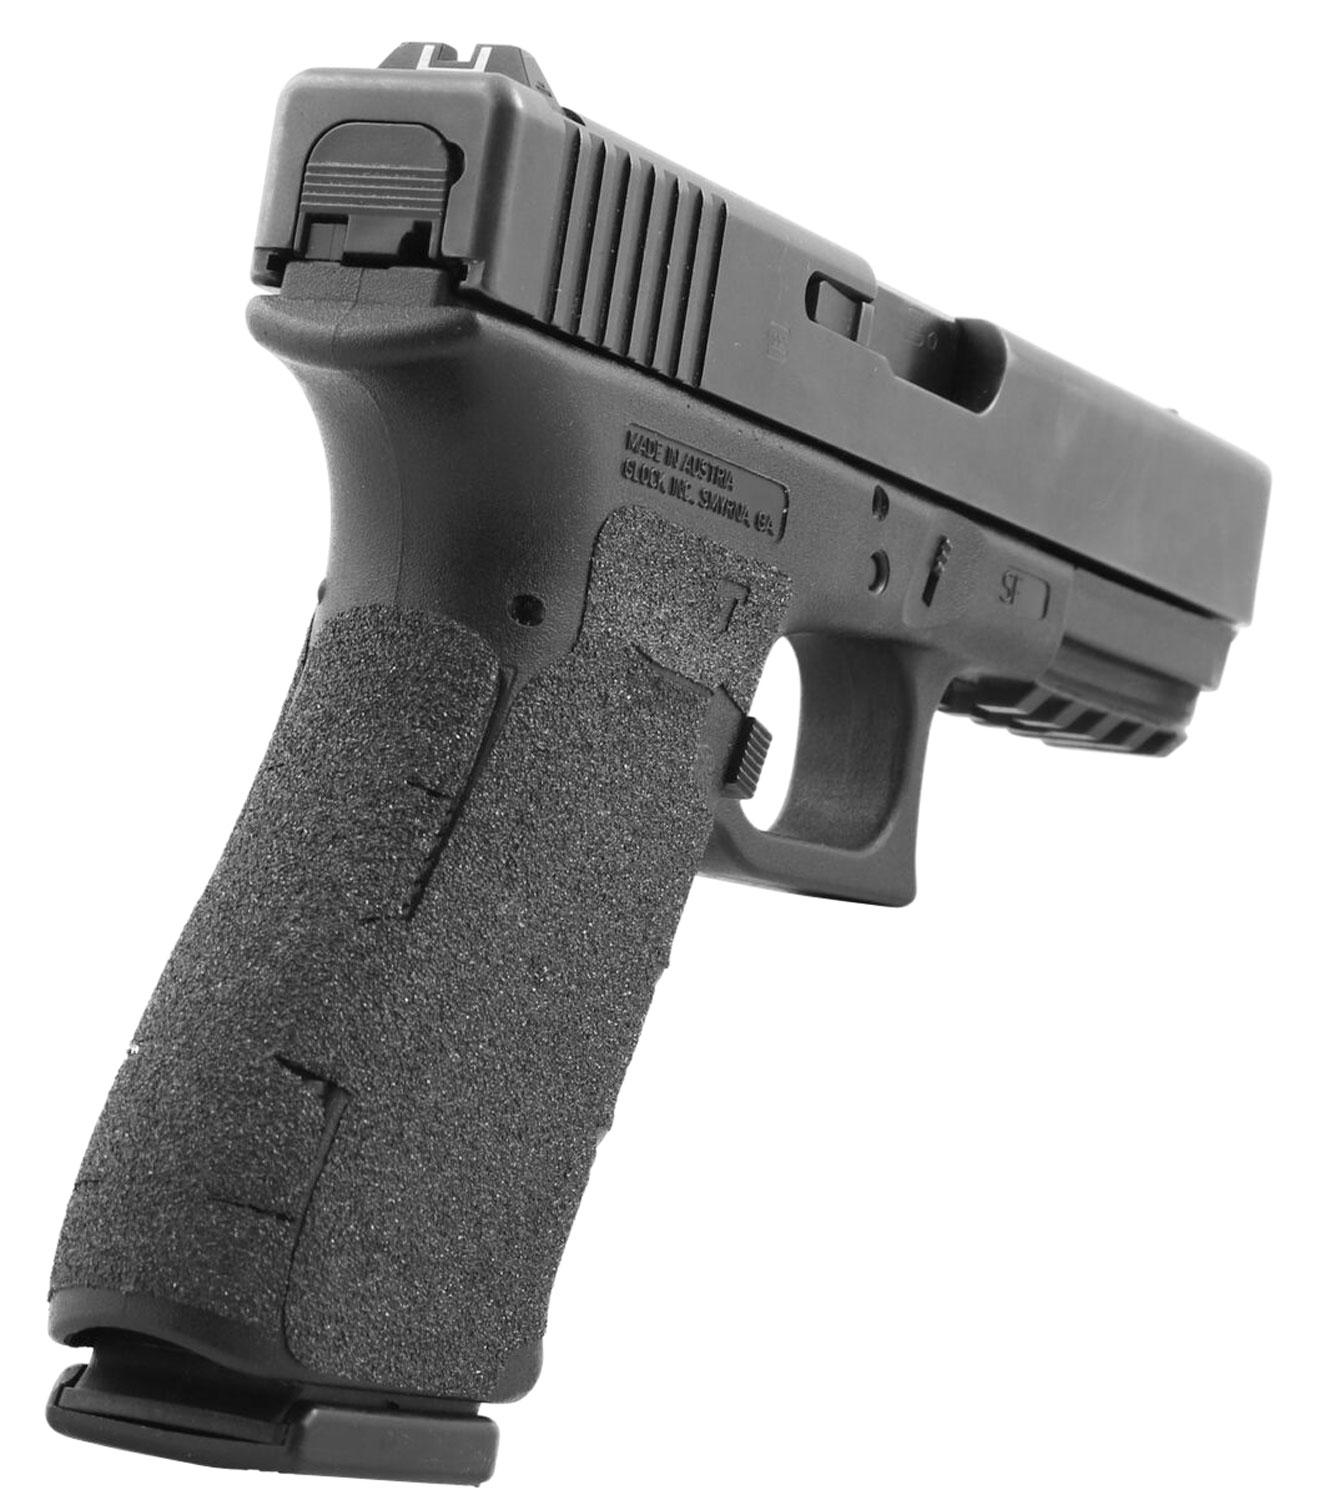 Talon 375g Glock 19 Gen 5 Granulte Adhesive Grip With Large Backstrap Textured Granulate Black